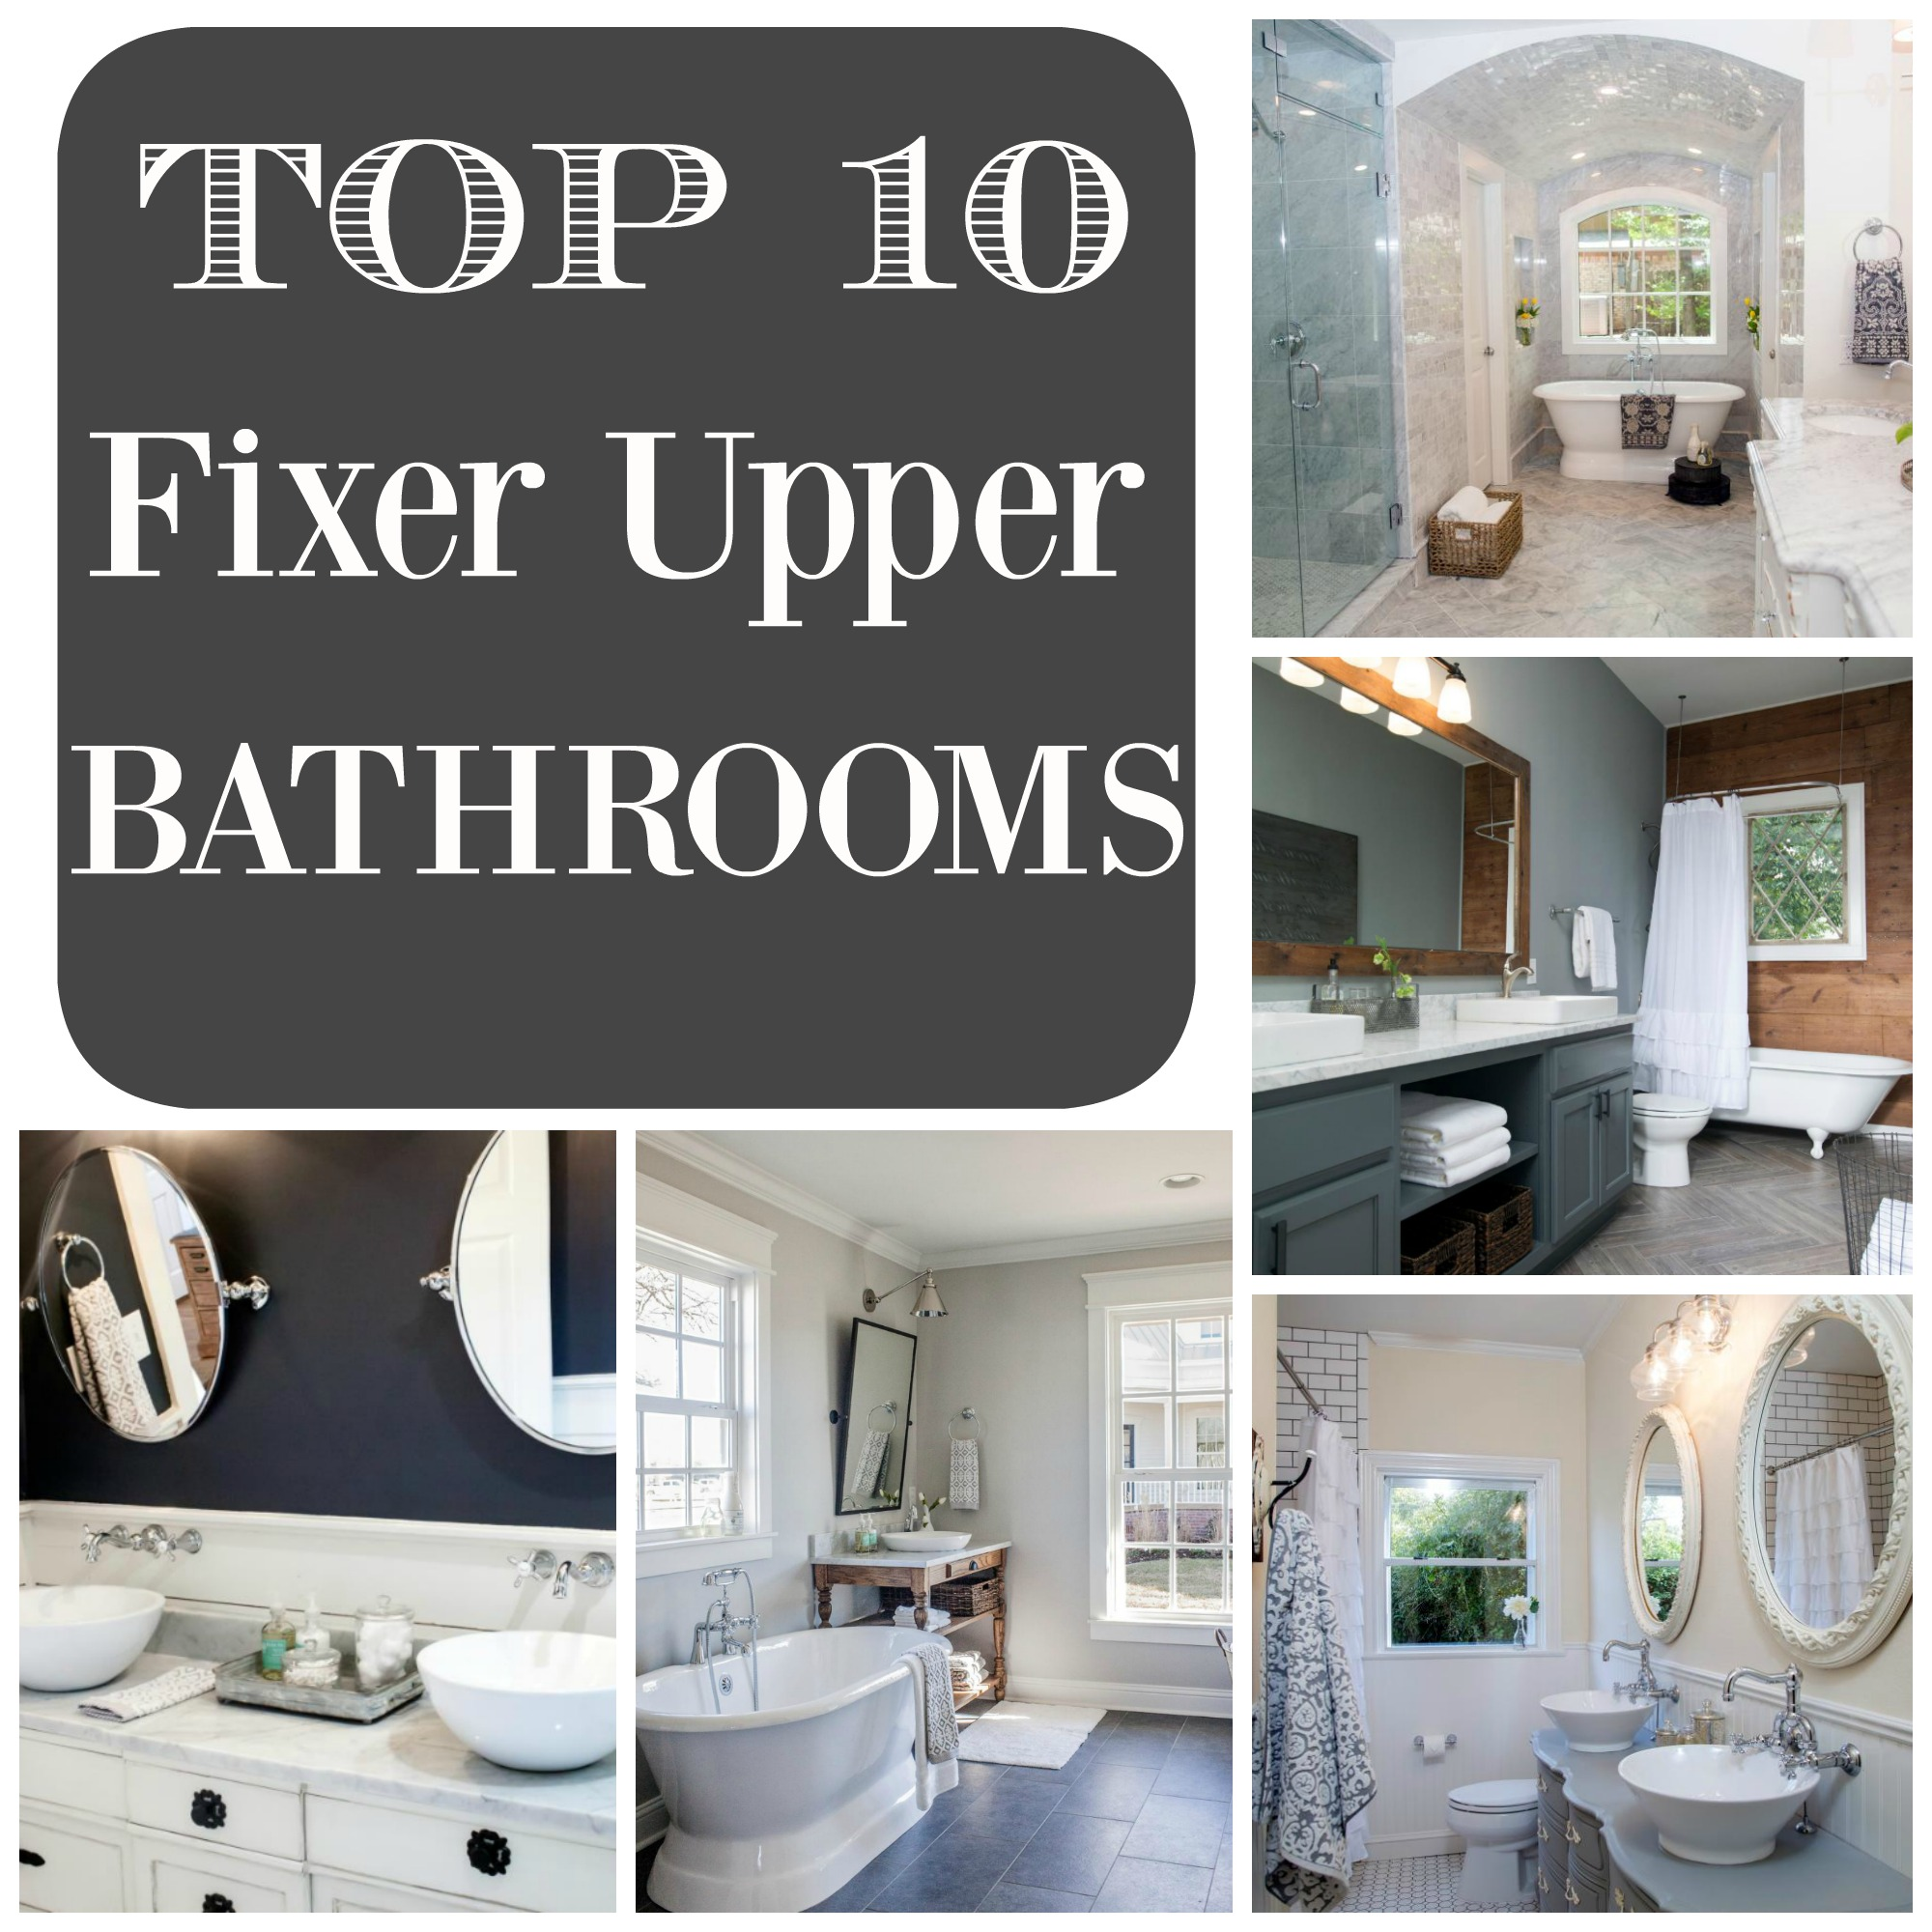 Bathroom Remodels Fixer Upper top 10 fixer upper bathrooms - restoration redoux